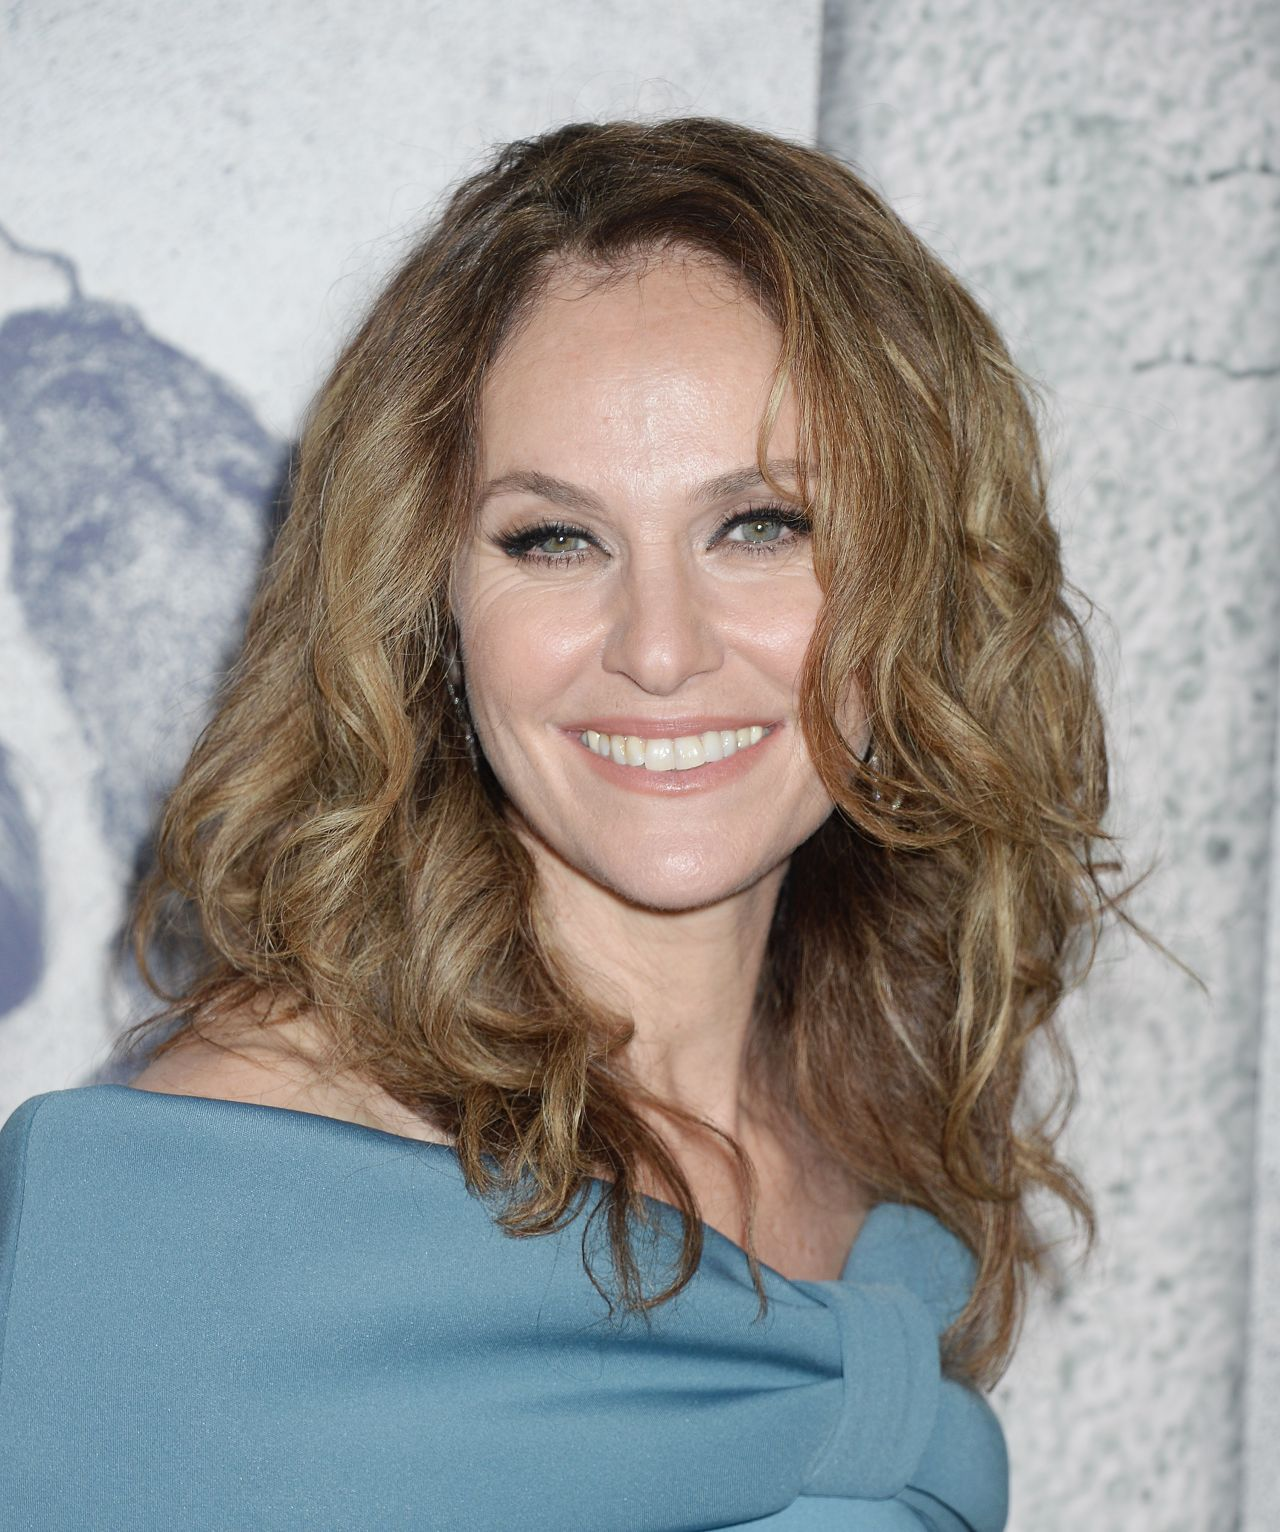 Amy Brenneman nudes (93 images) Boobs, Twitter, cleavage